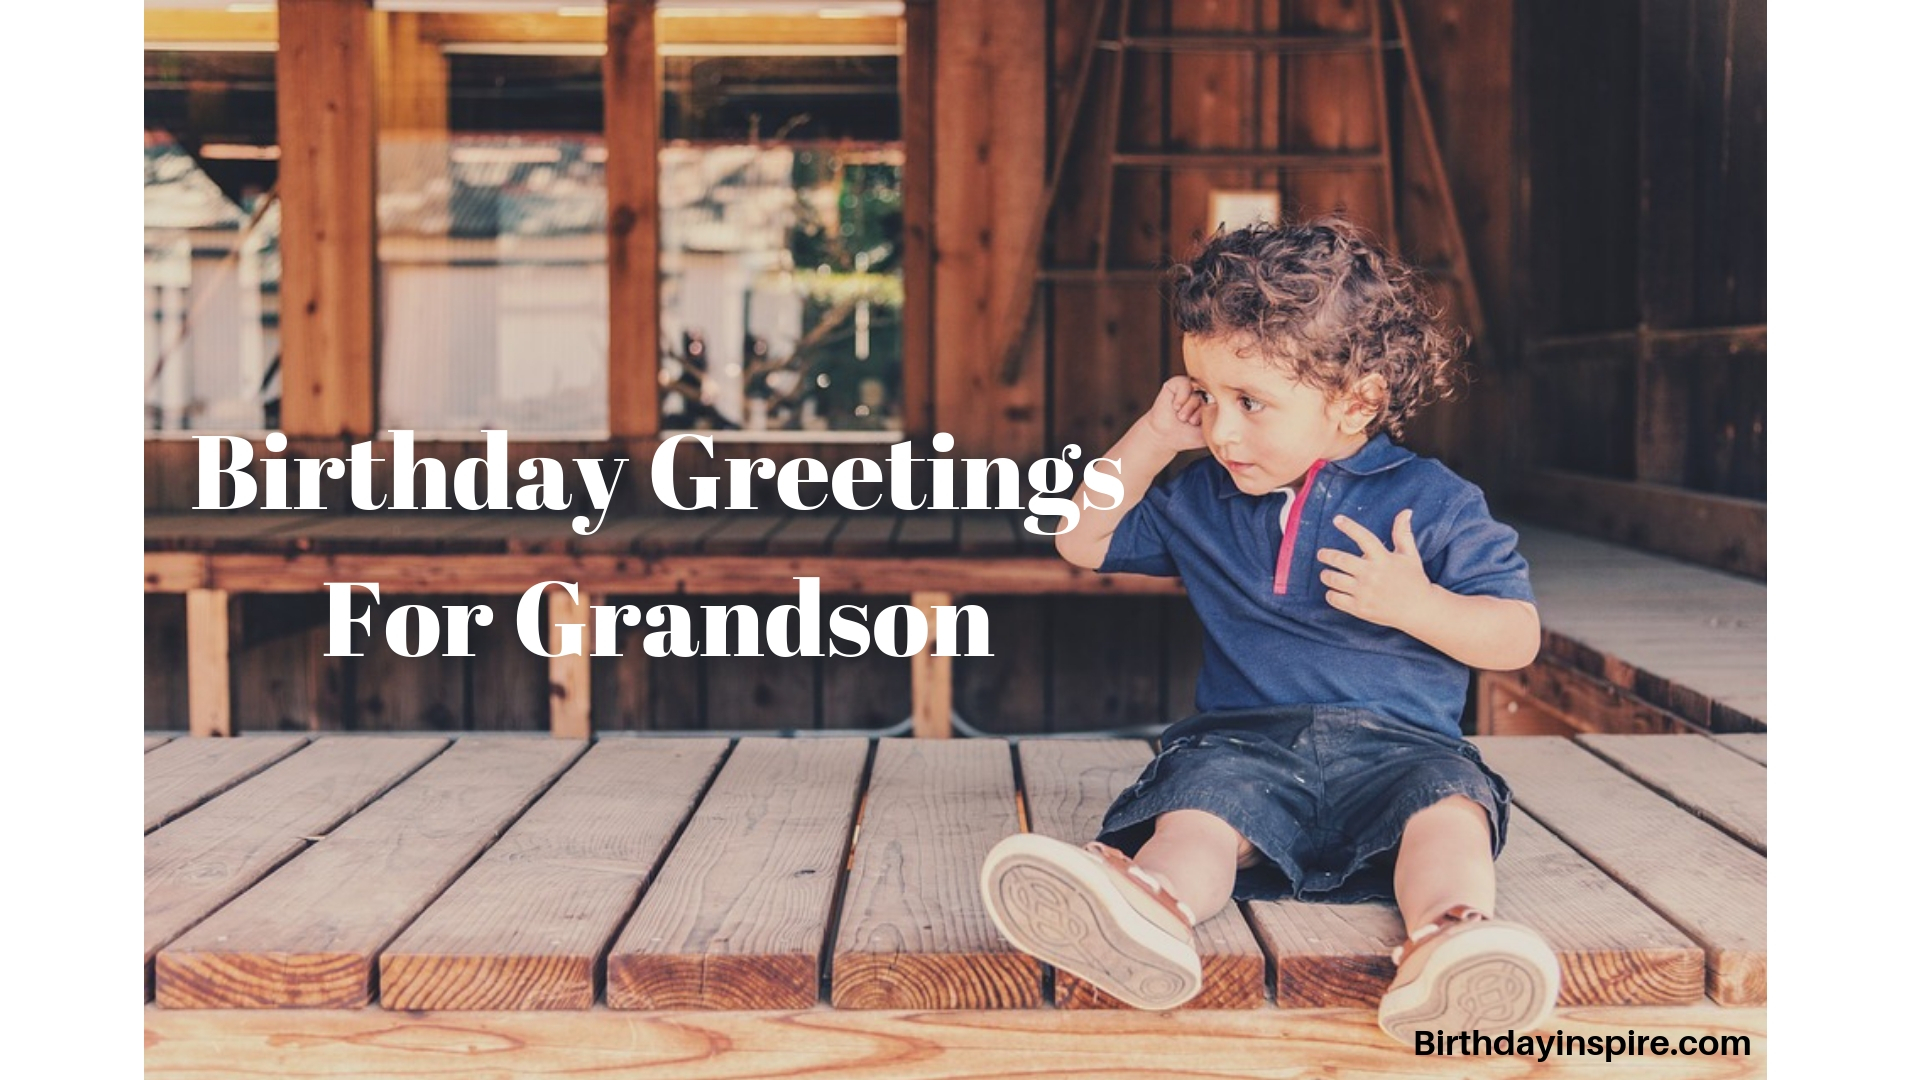 birthday greetings for grandson